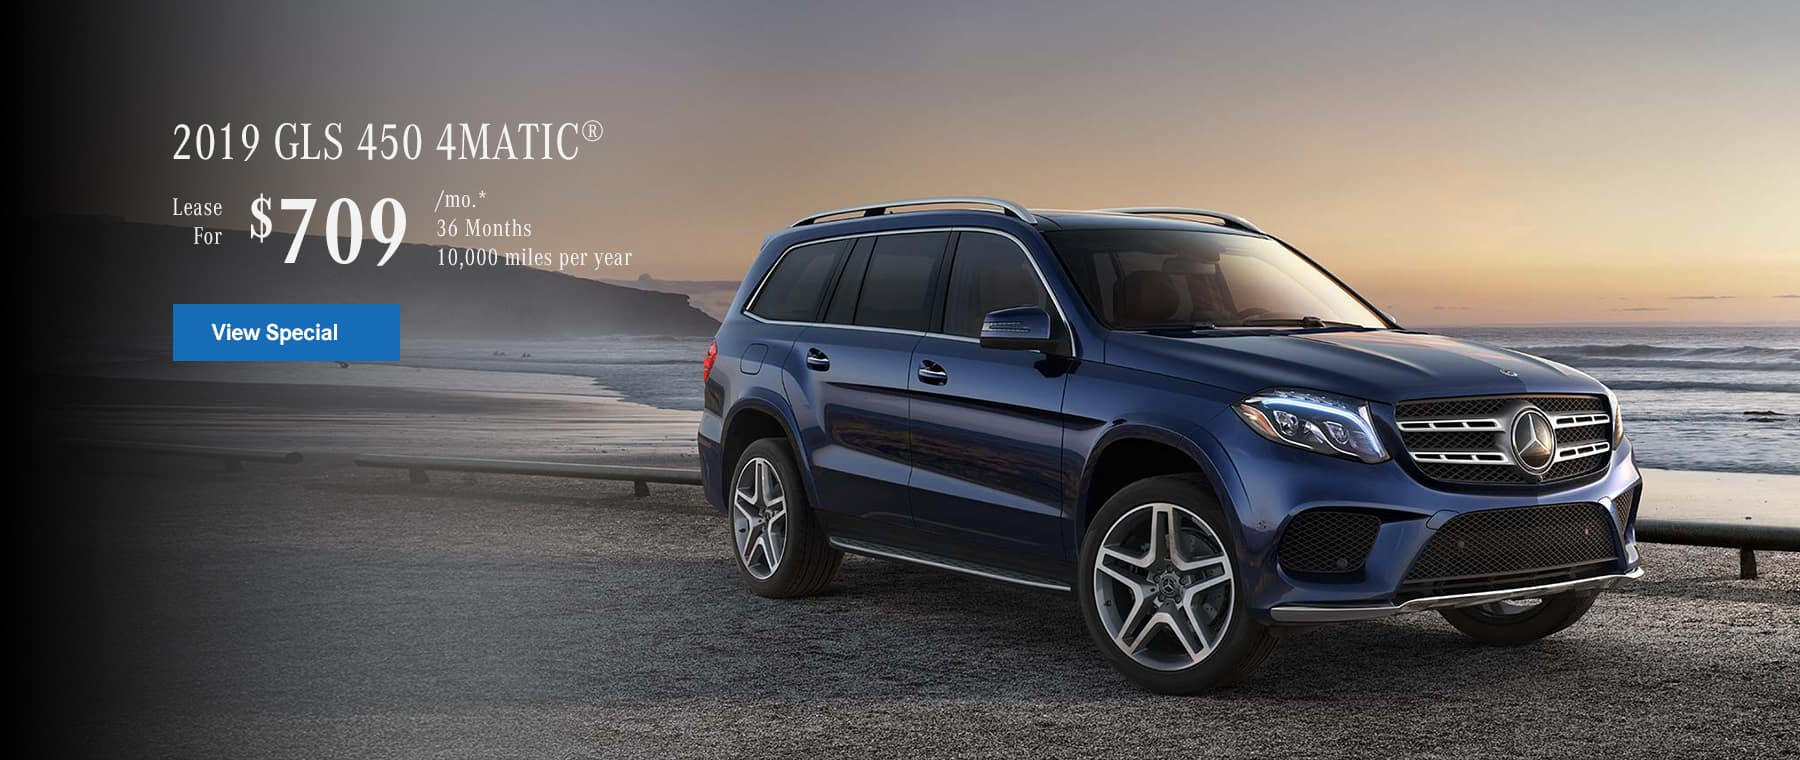 2019 GLS 450 4MATIC